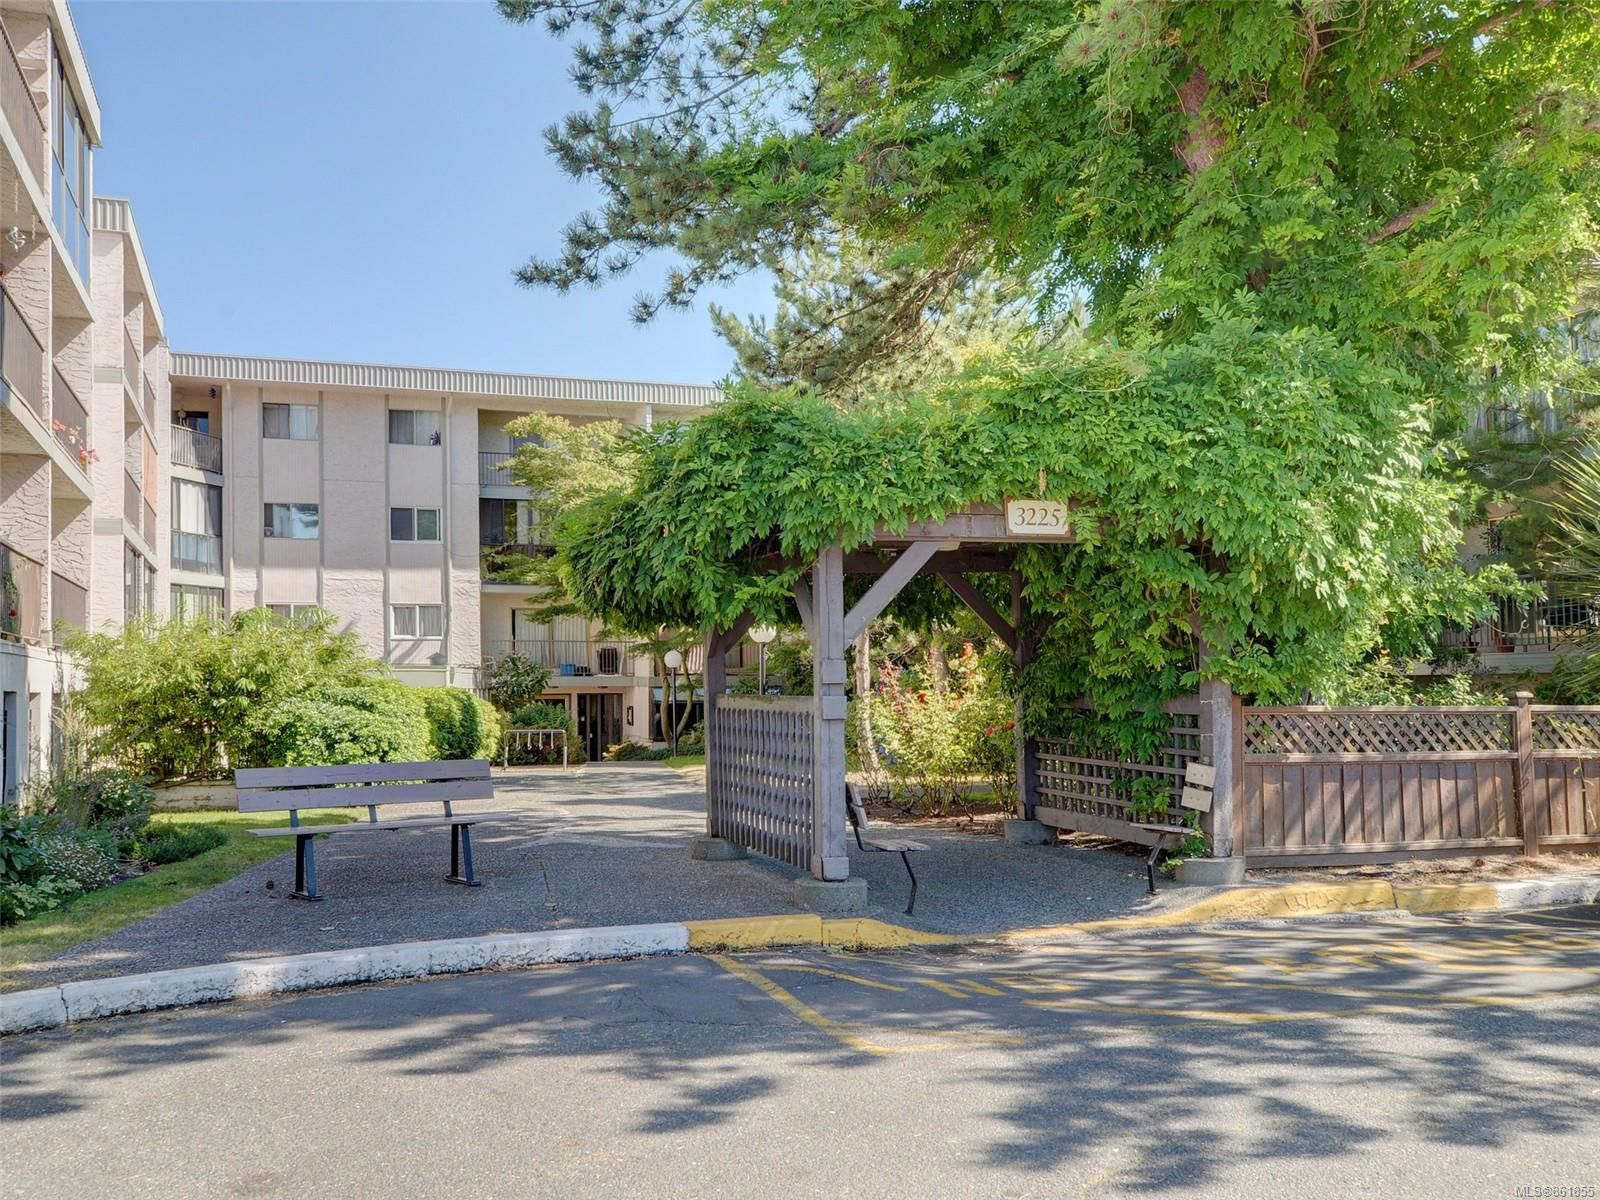 Main Photo: 318 3225 Eldon Pl in : SW Rudd Park Condo for sale (Saanich West)  : MLS®# 861855